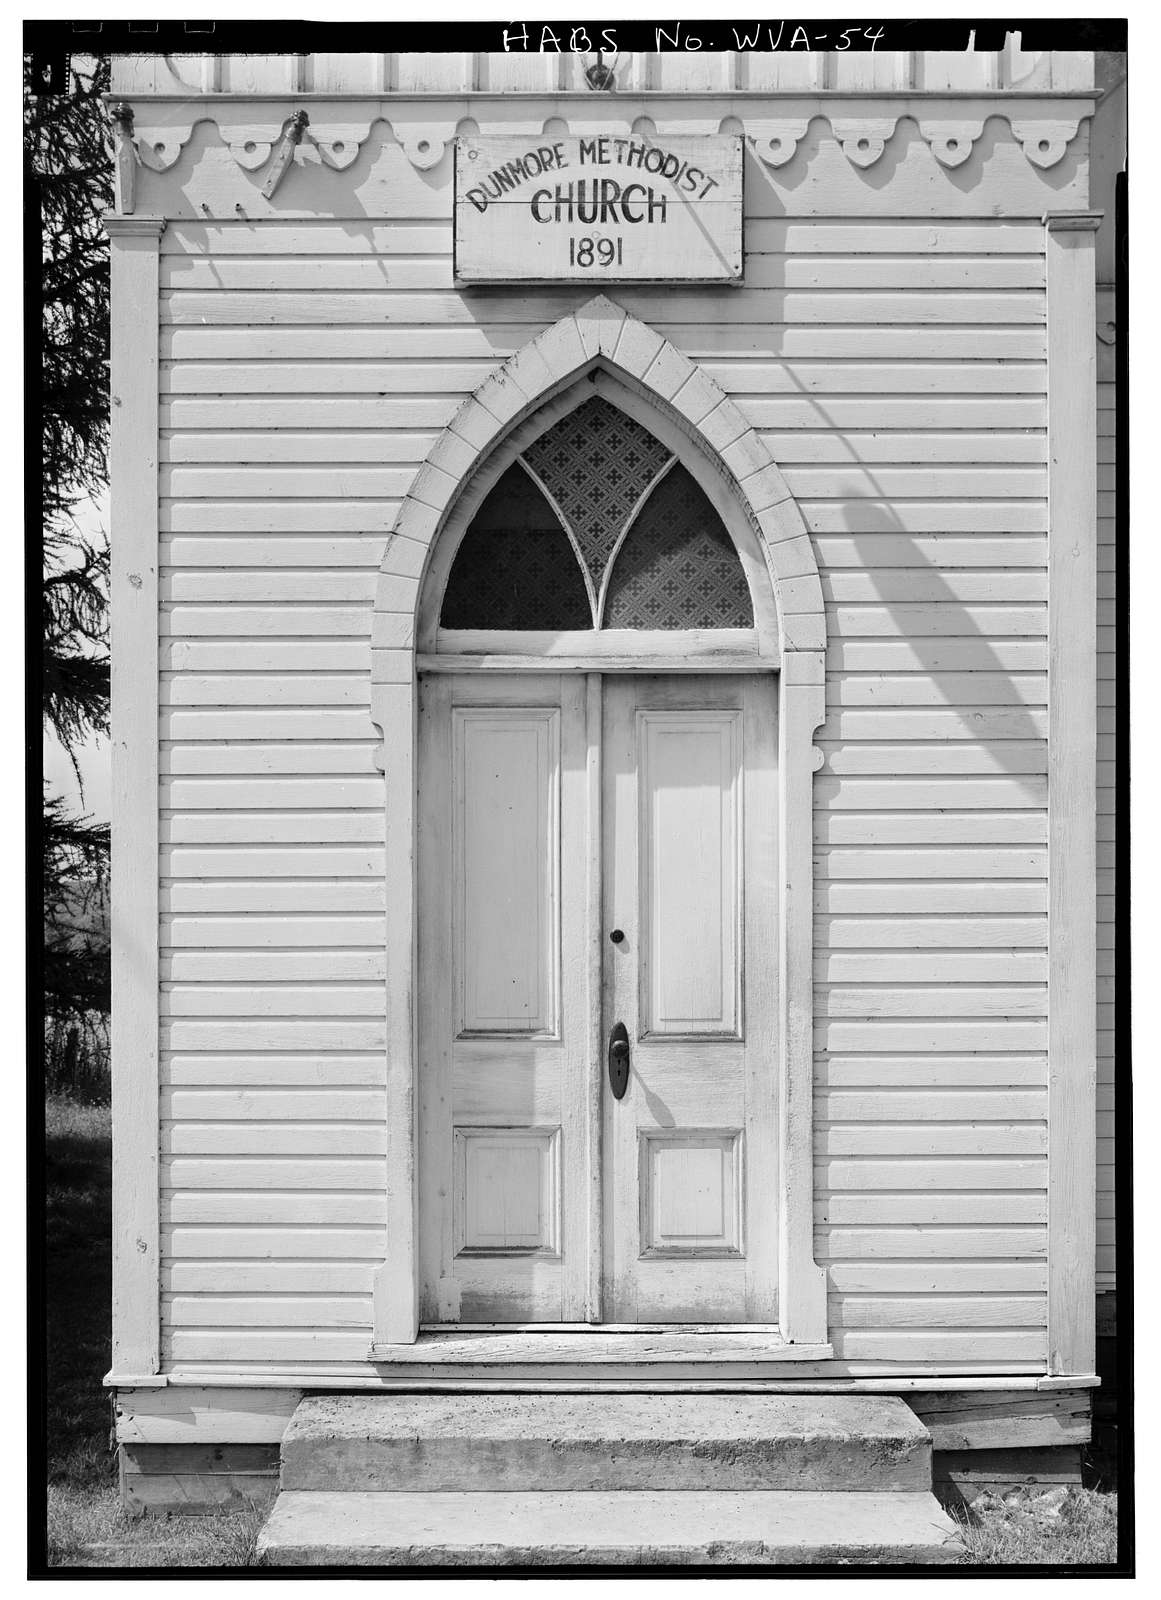 Dunmore Methodist Church, State Route 28, Dunmore, Pocahontas County, WV